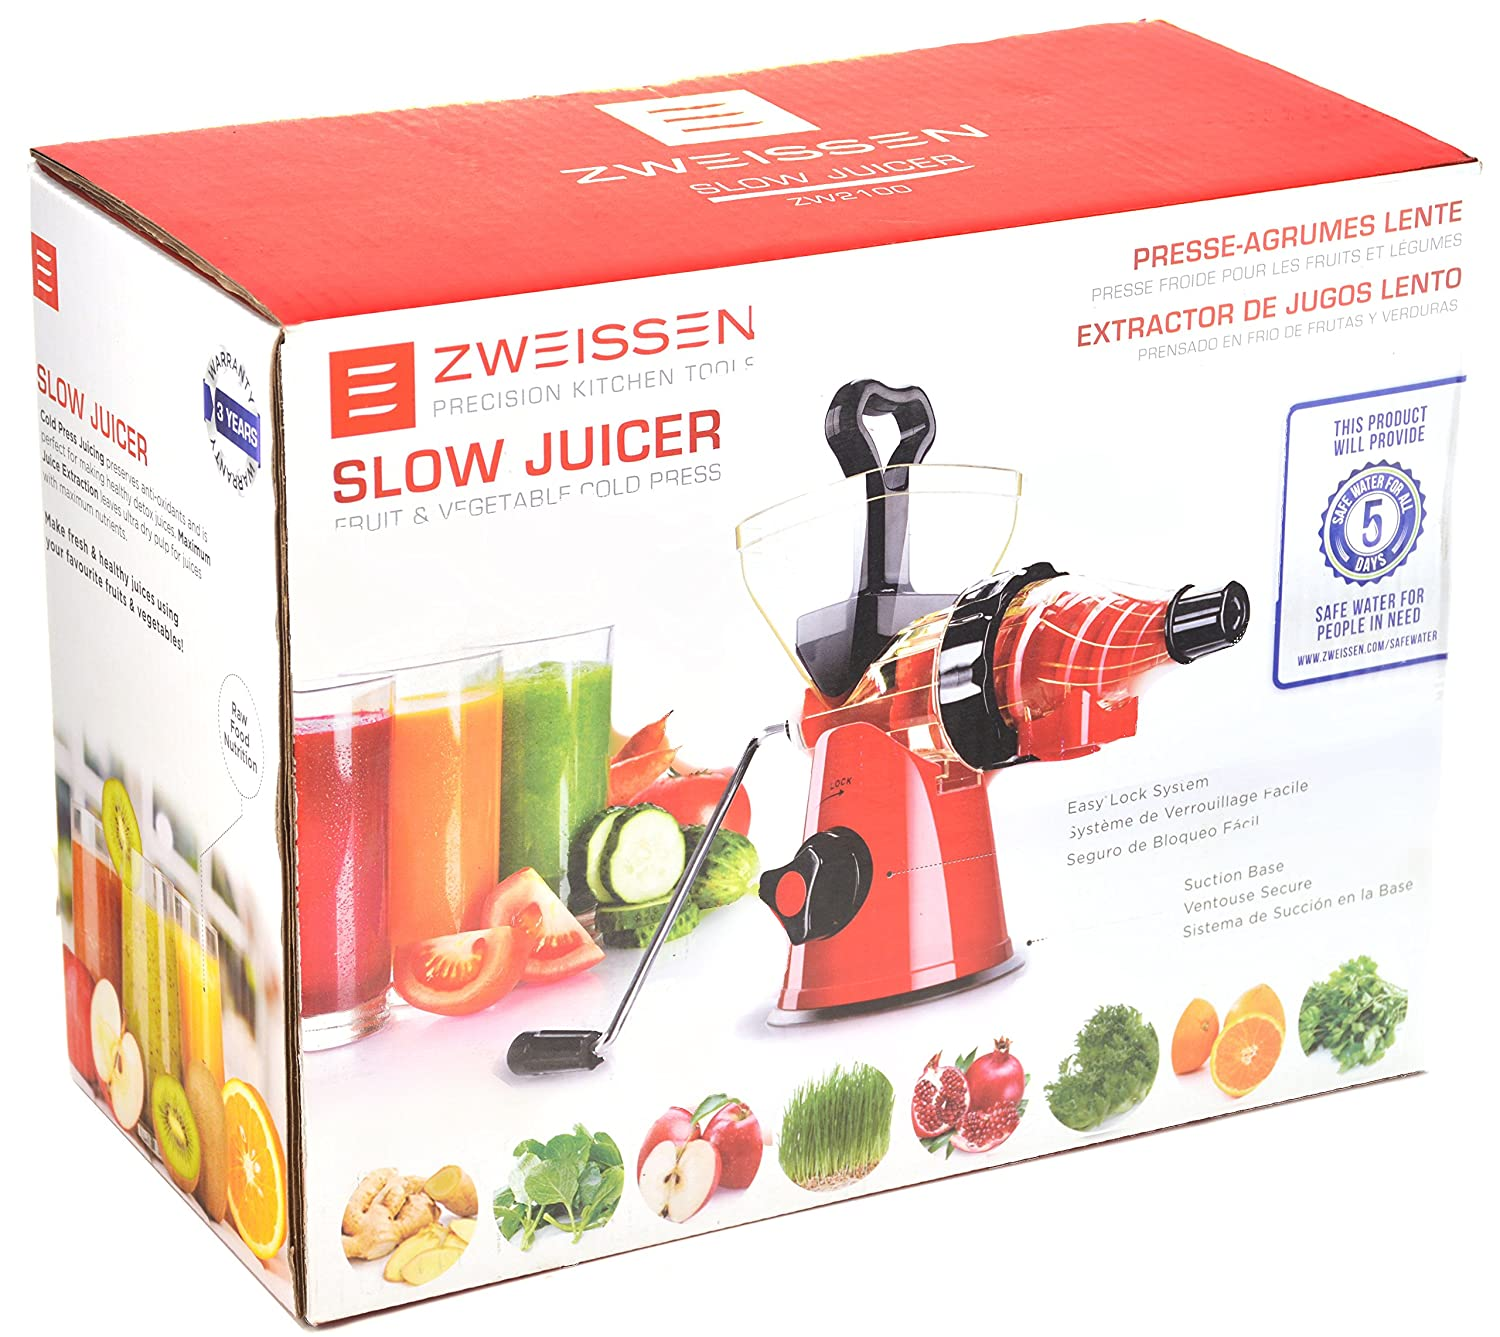 Slow Juicer Pulp : ZWEISSEN Hand Operated Fruit vegetable Masticating Slow juicer Cold Press pulp e eBay